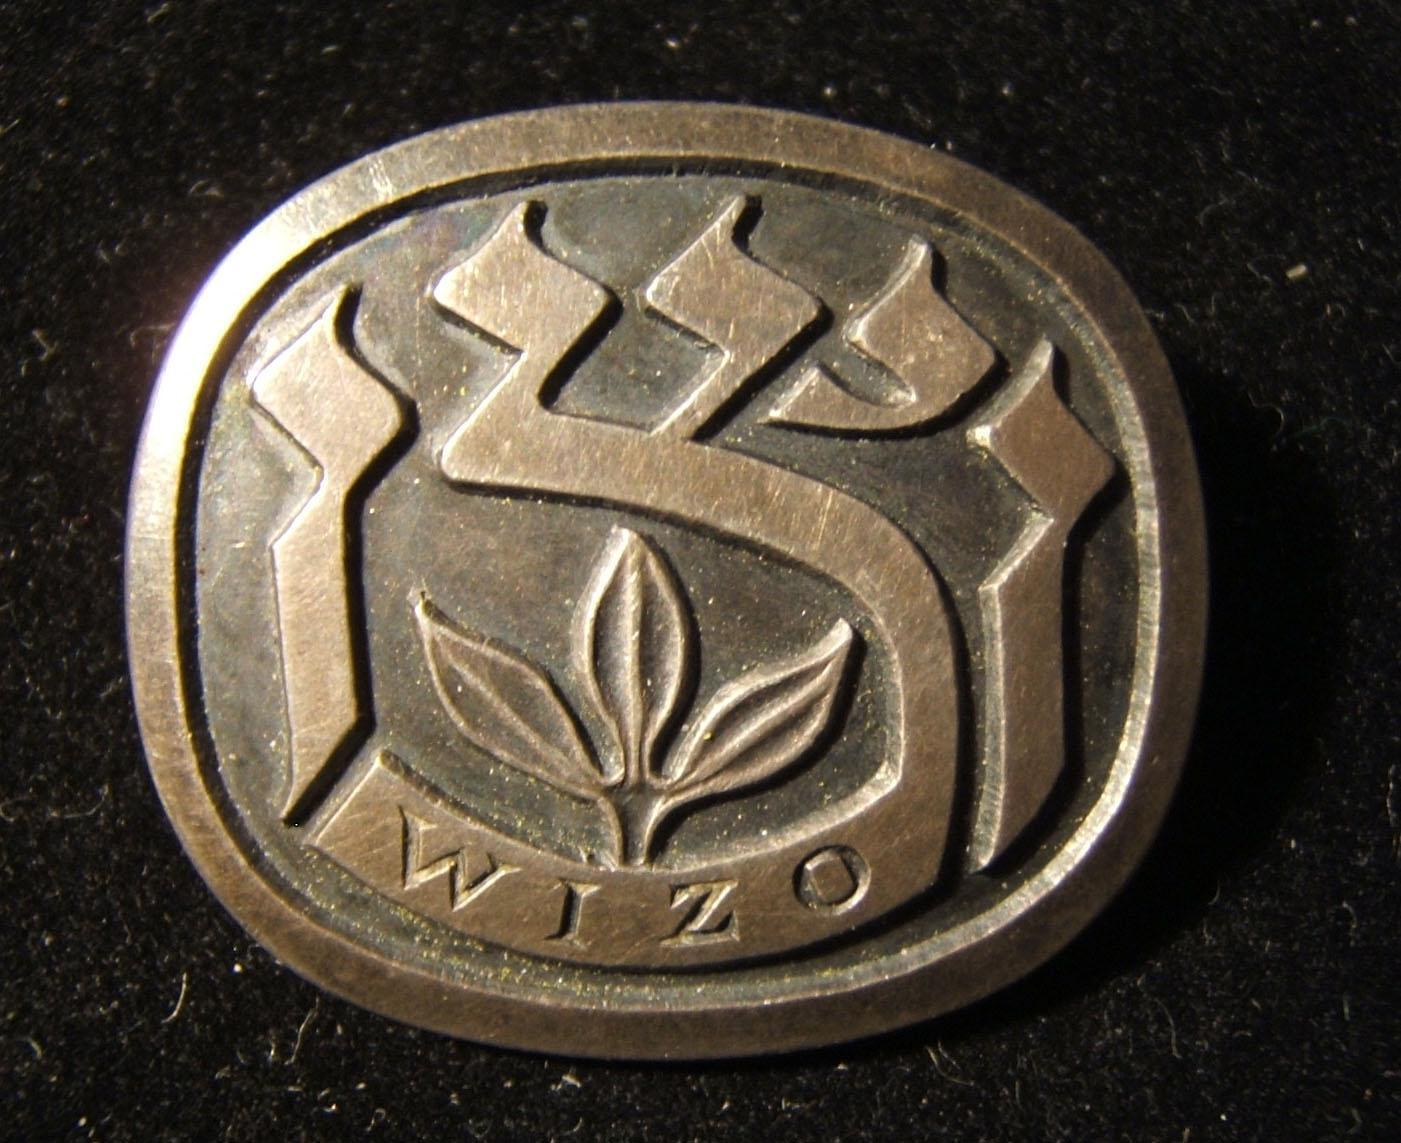 Palestine/Israel: WIZO (Women's International Zionist Organization) pin in .900 silver (marked on back), circa. 1940's-50's; weight: 9.85g. Probably issued to a member who raised o